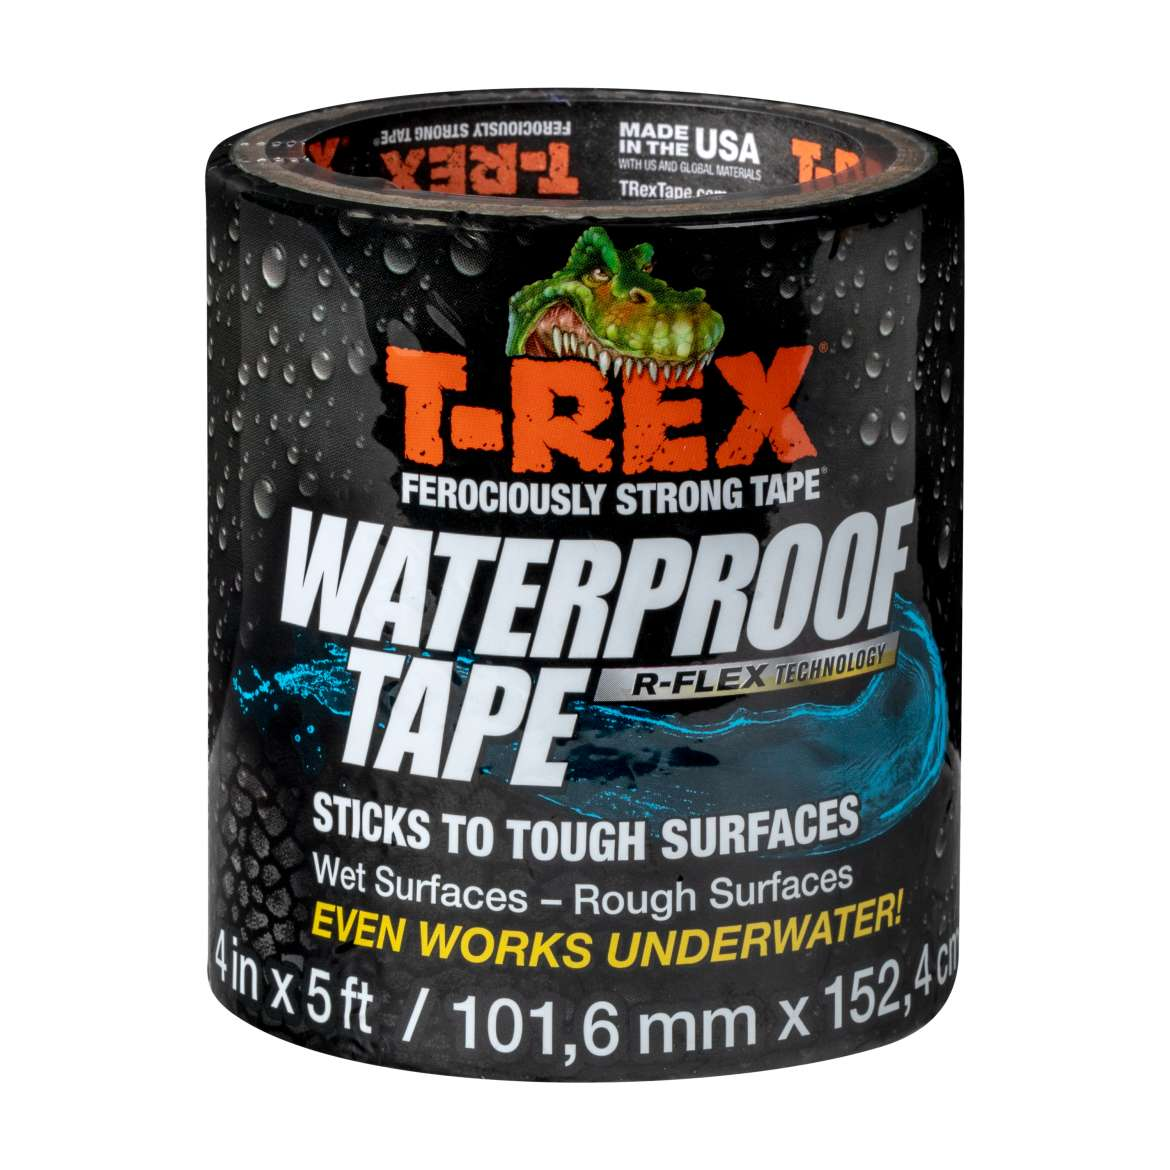 T-Rex® Waterproof Tape - 4 in. x 5 ft.